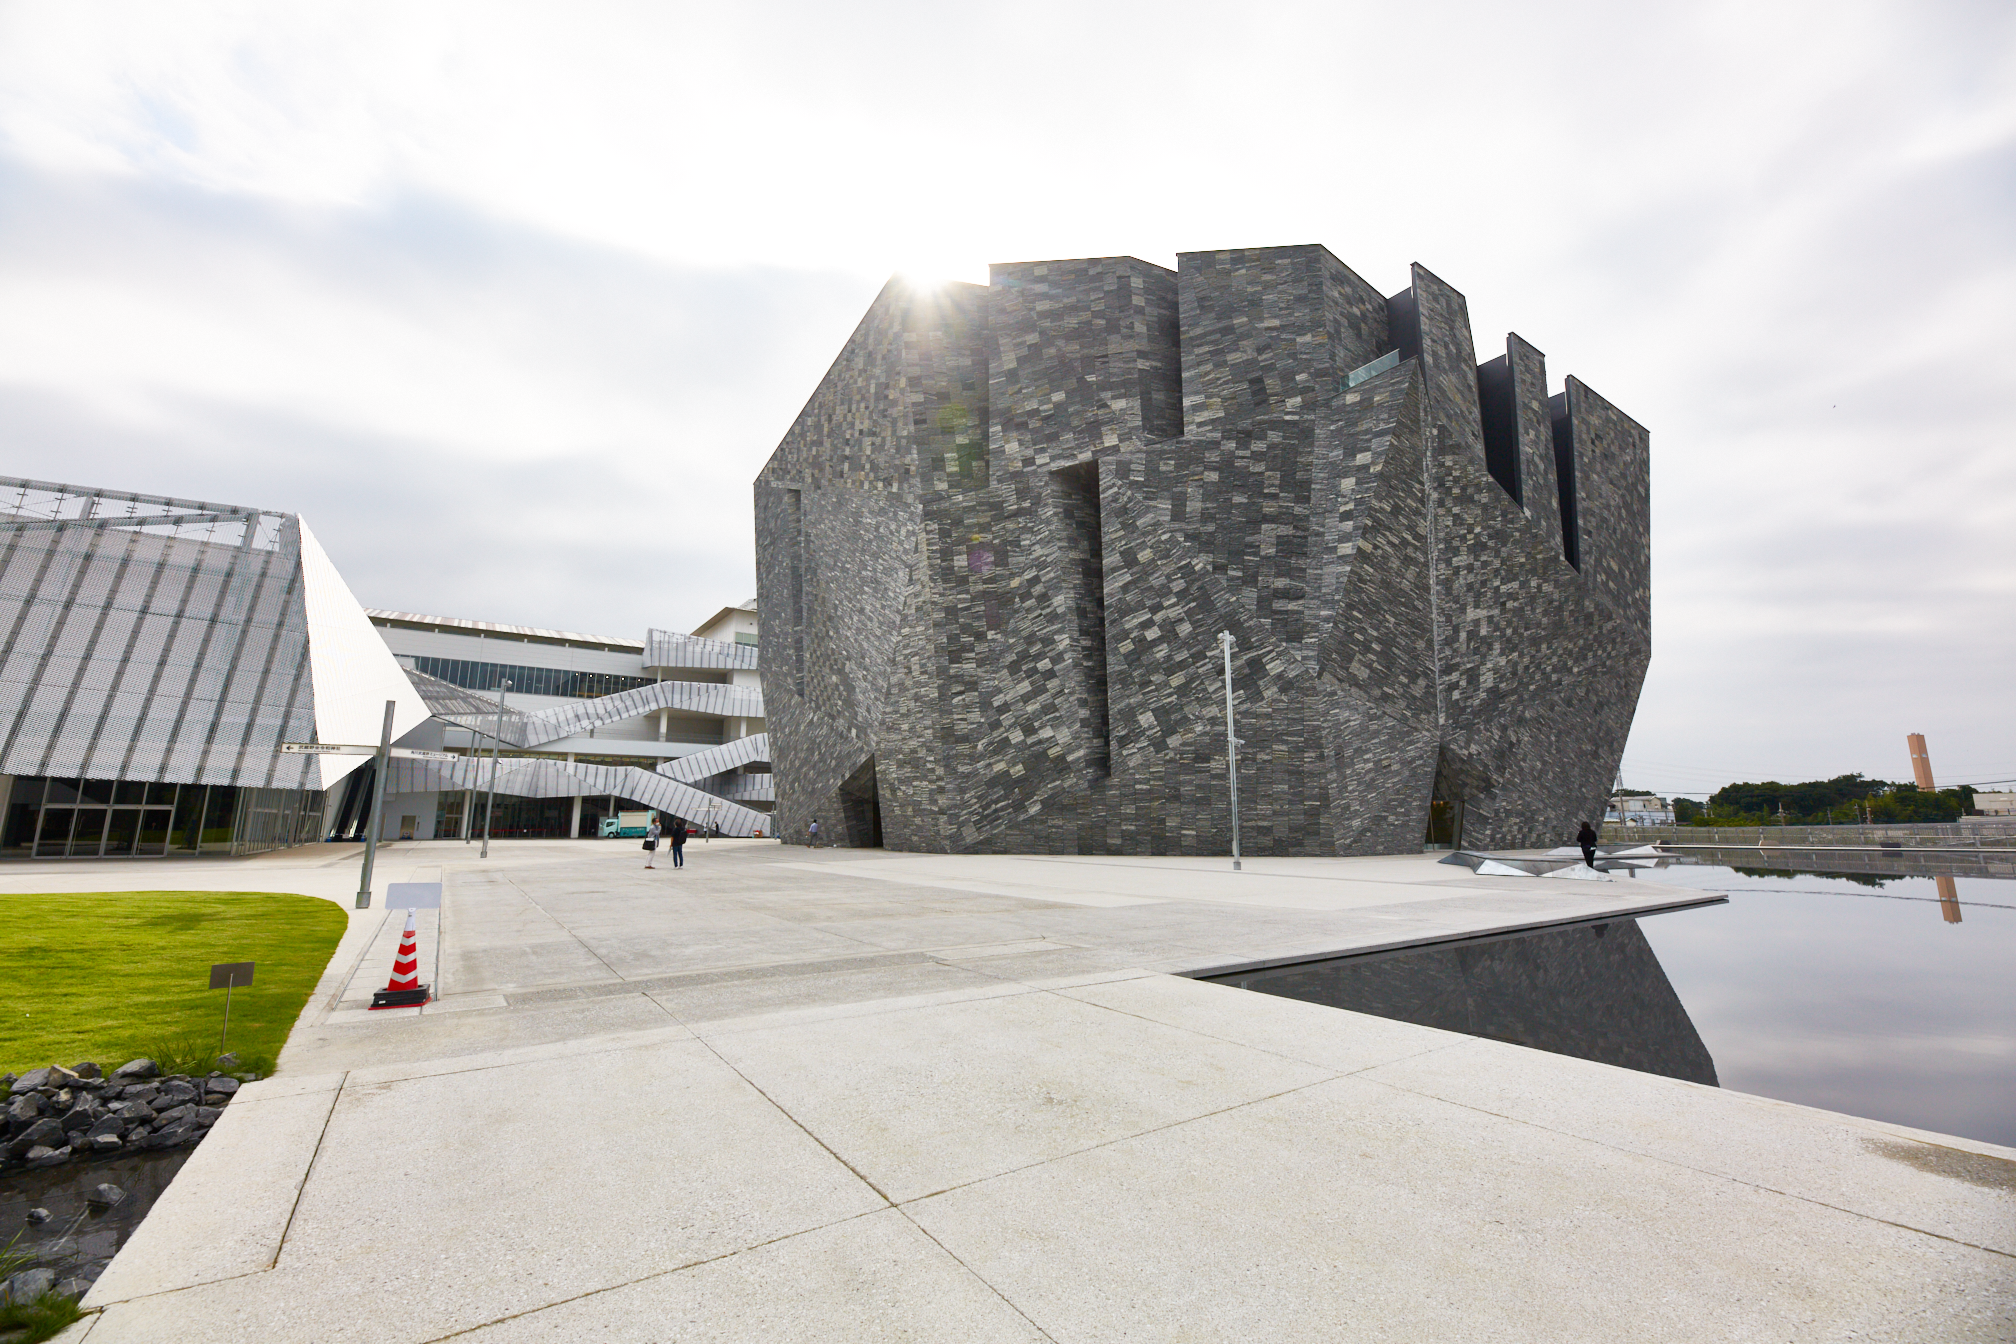 In photos: the new Kadokawa Culture Museum is a modern masterpiece designed by Kengo Kuma